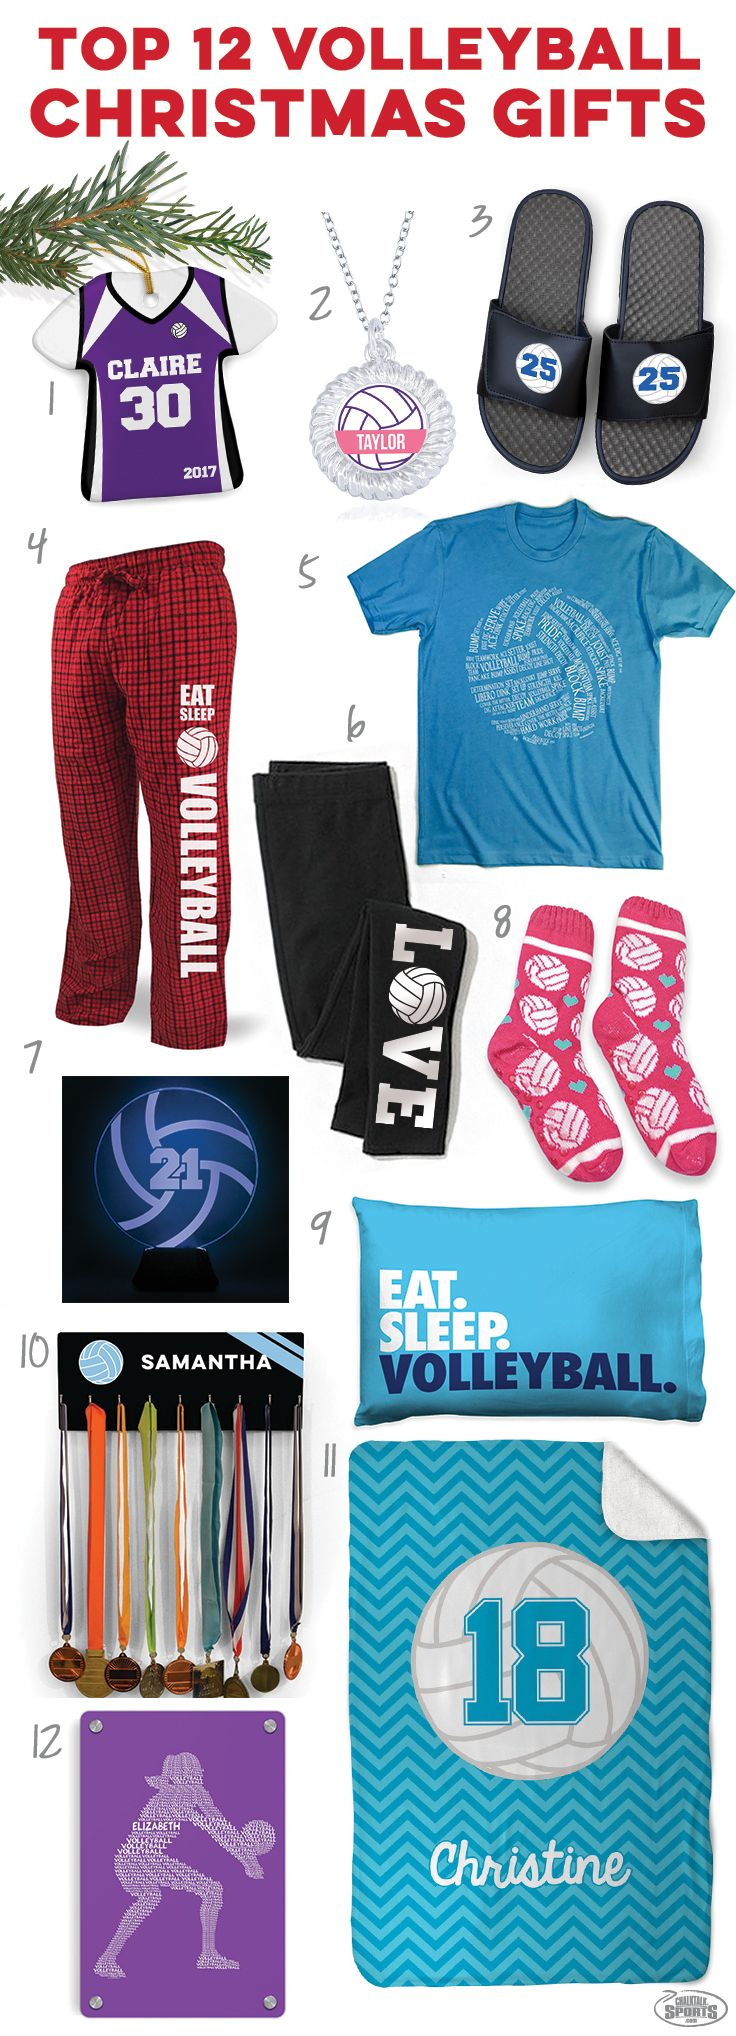 Check Out These Great Holiday Volleyball Gift Ideas Click To See More Details On Our T Volleyball Christmas Gifts Volleyball Christmas Volleyball Player Gifts